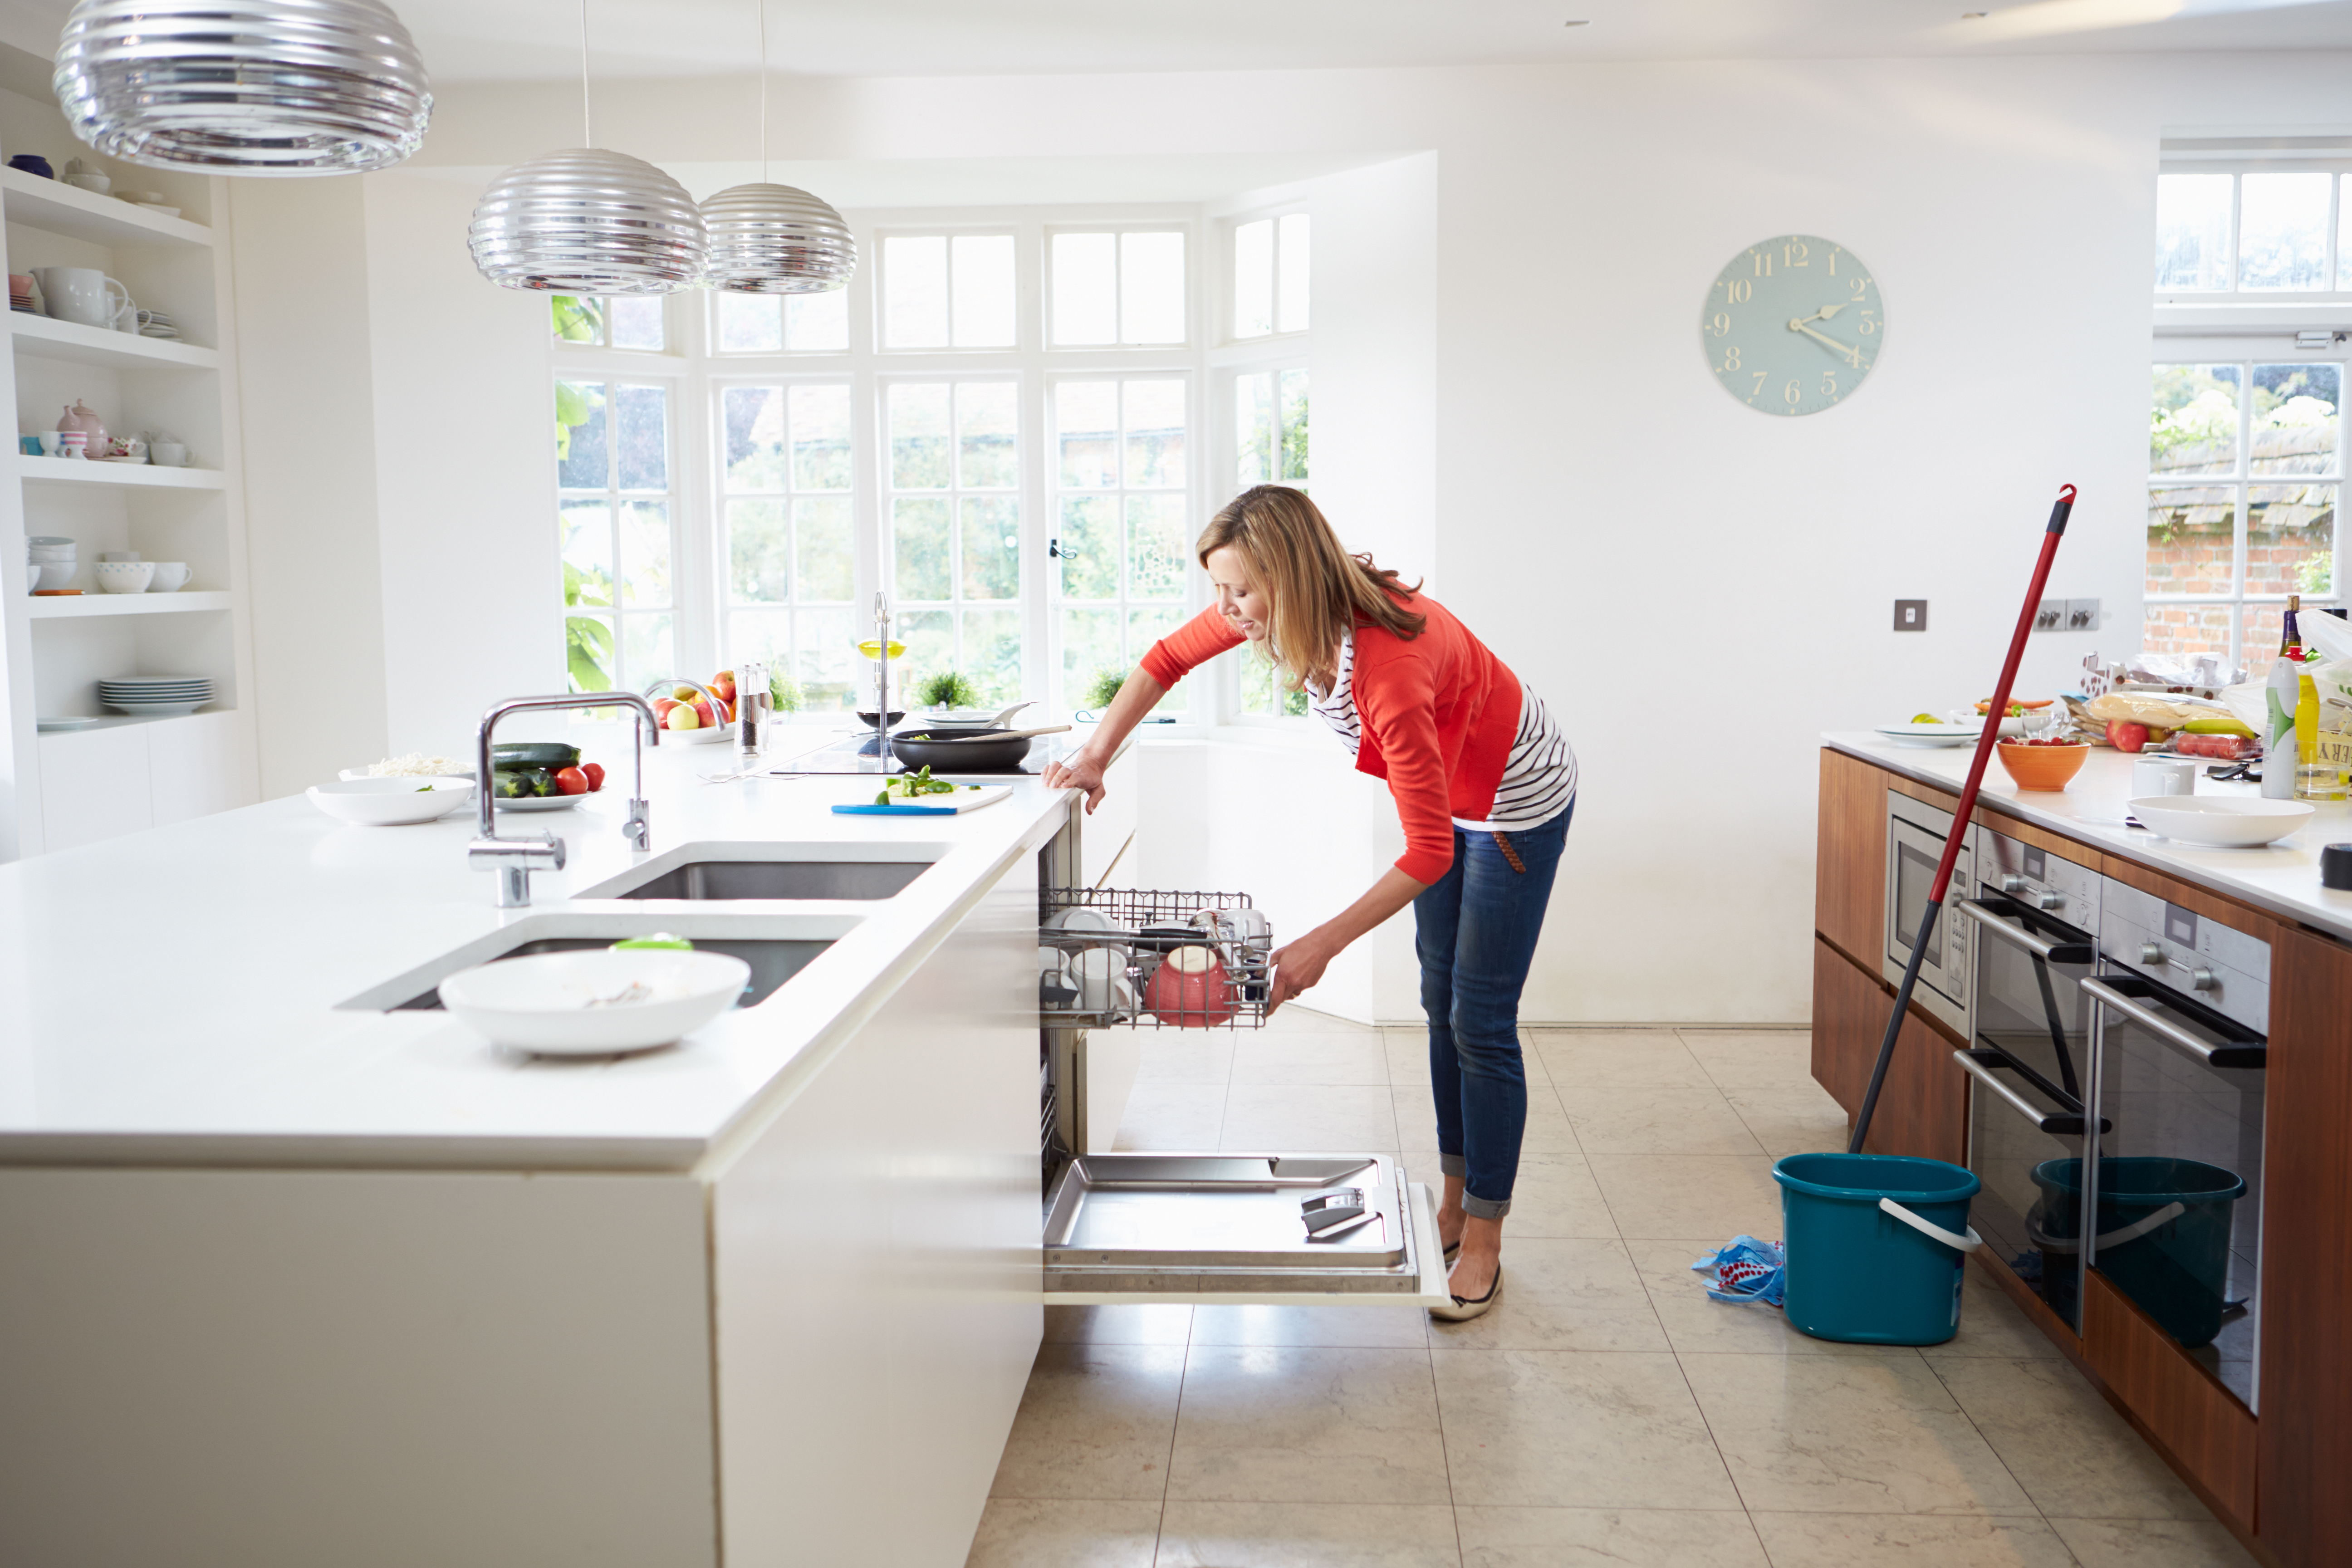 Dishwasher Spray Arm Not Turning | Home Guides | SF Gate